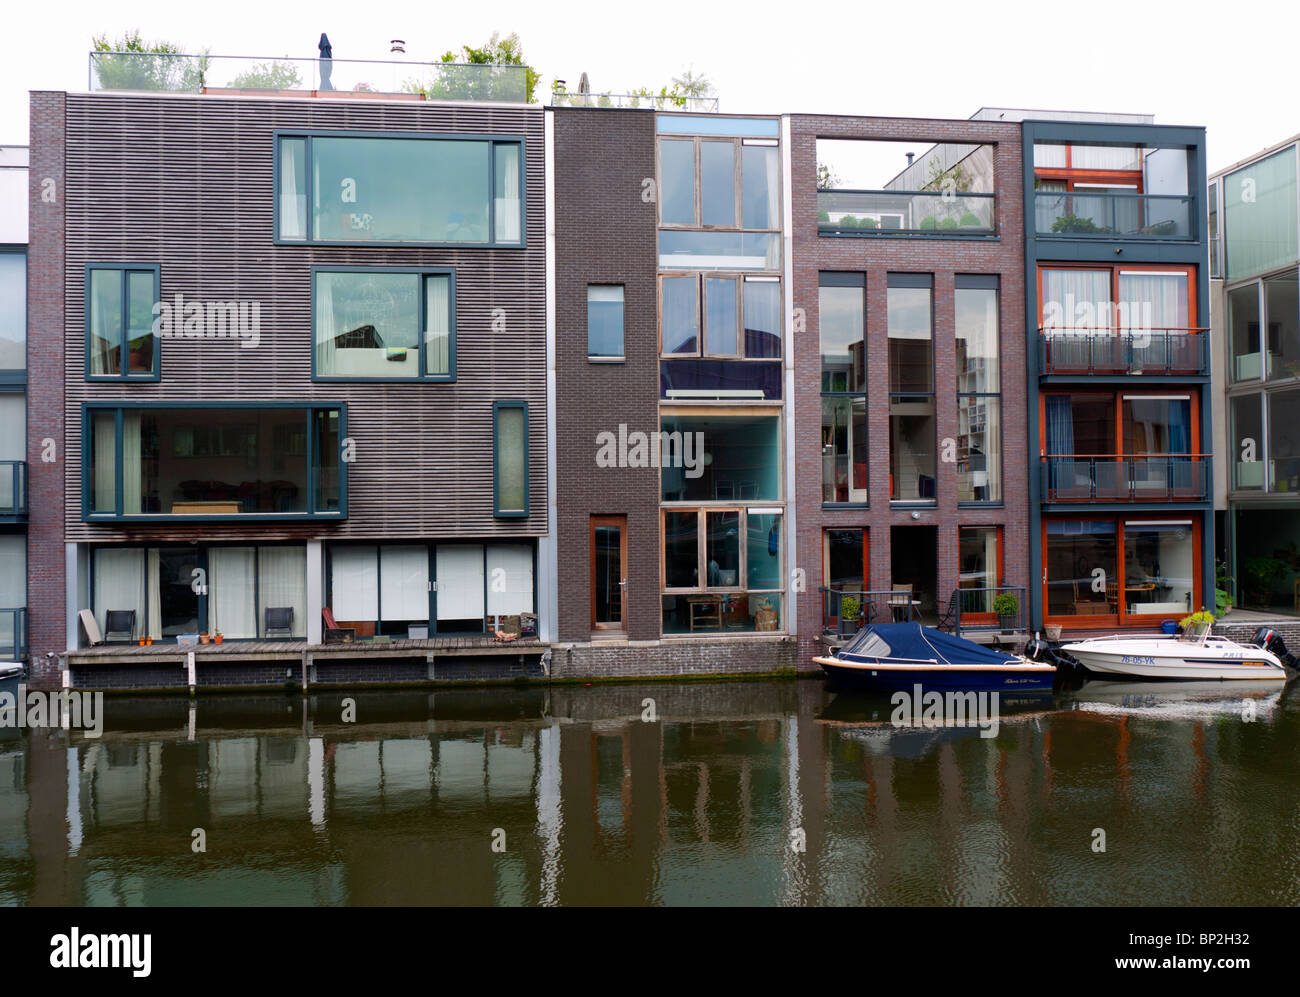 Modern Architecture Netherlands modern architecture of new houses beside canal on borneo island